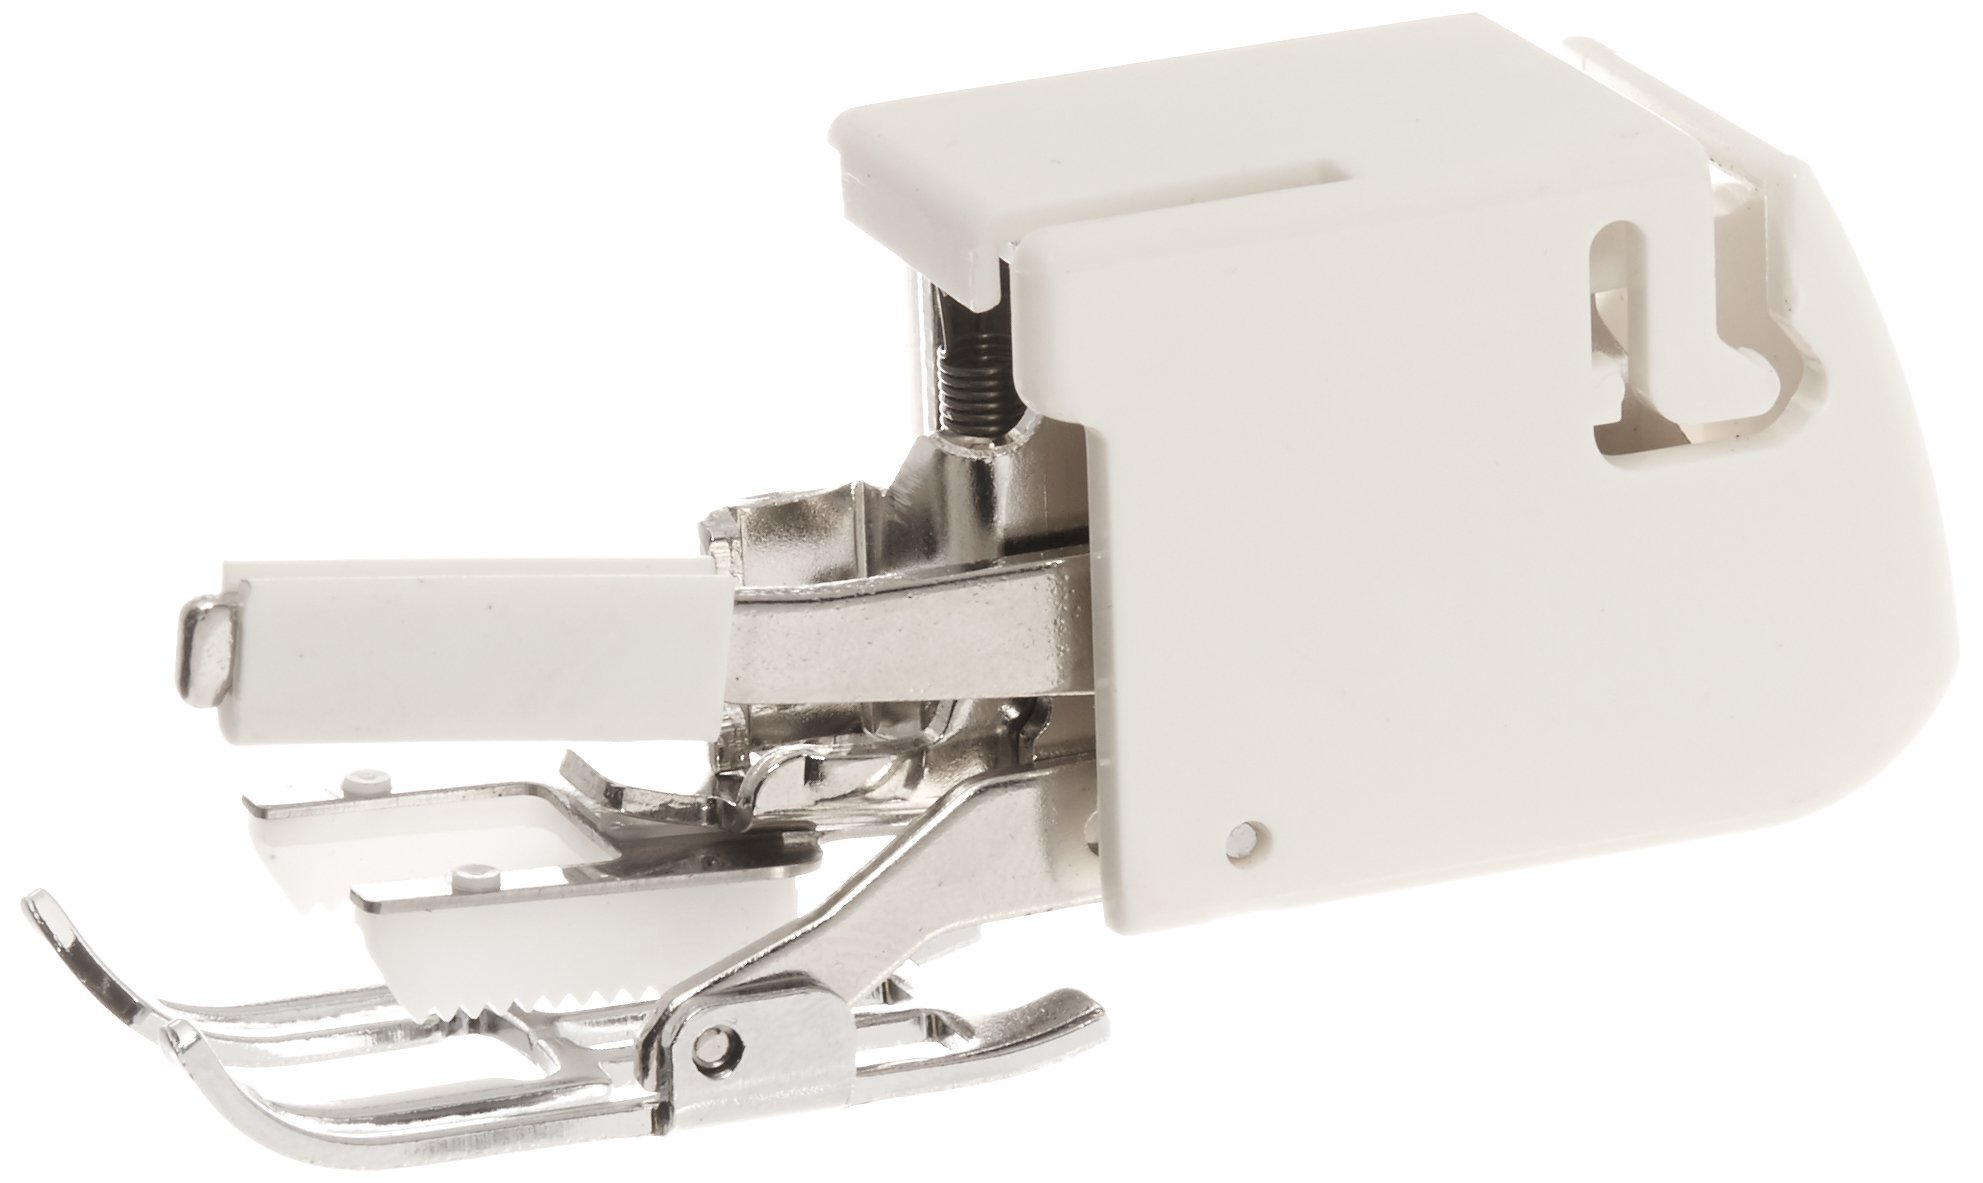 Quilting Attachment #200100007 For Janome Sewing Machines 200-100-007